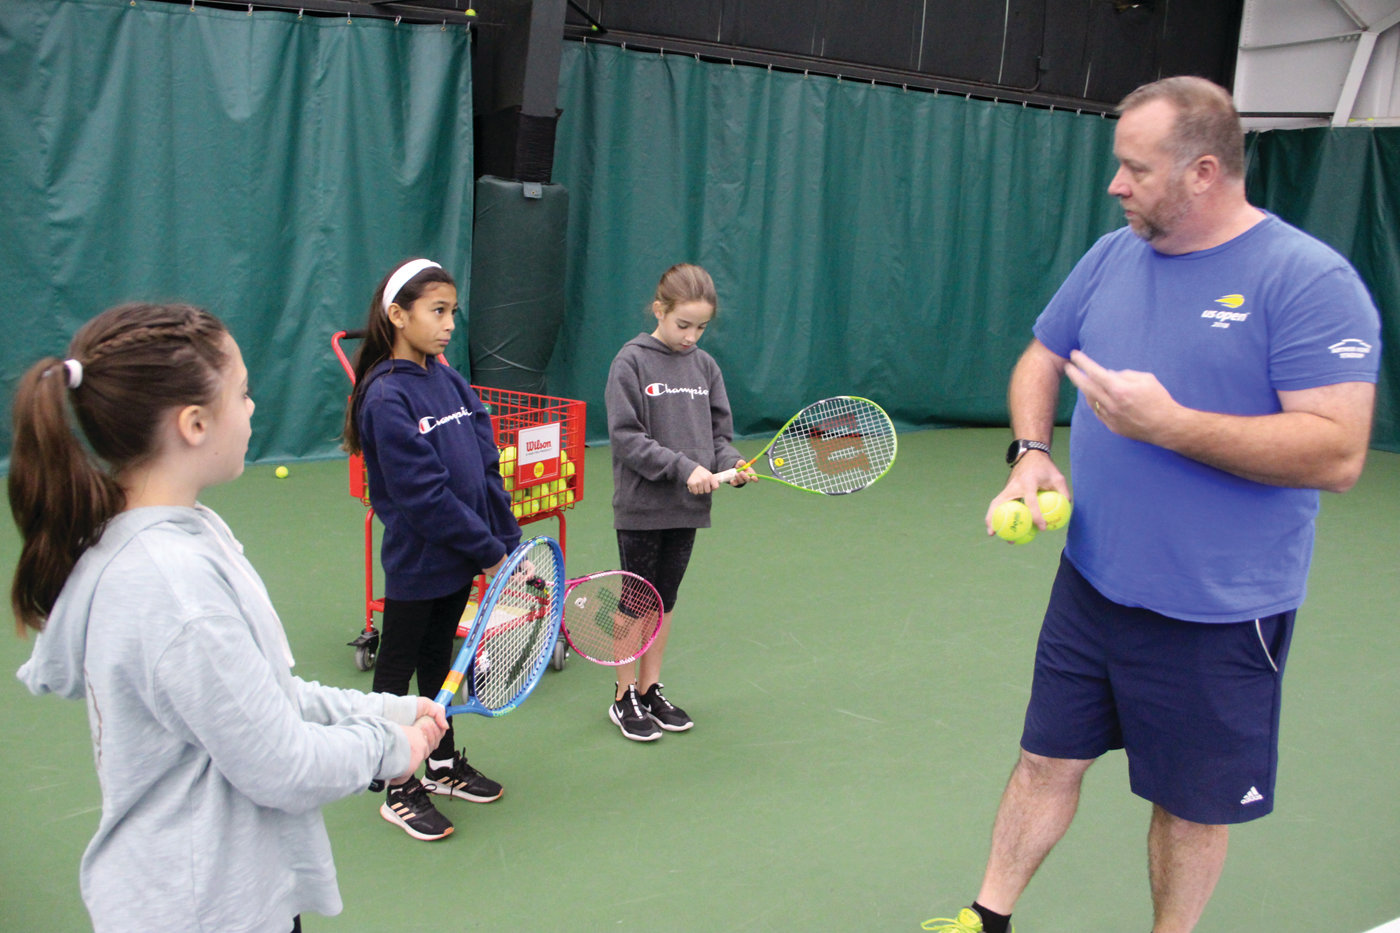 HOW IT'S DONE: Doug James has the girls practice a backhand swing before actually having them hit balls. Here he works with Autumn Koznar as Livia Xaykosy and Lexi Sky look on.